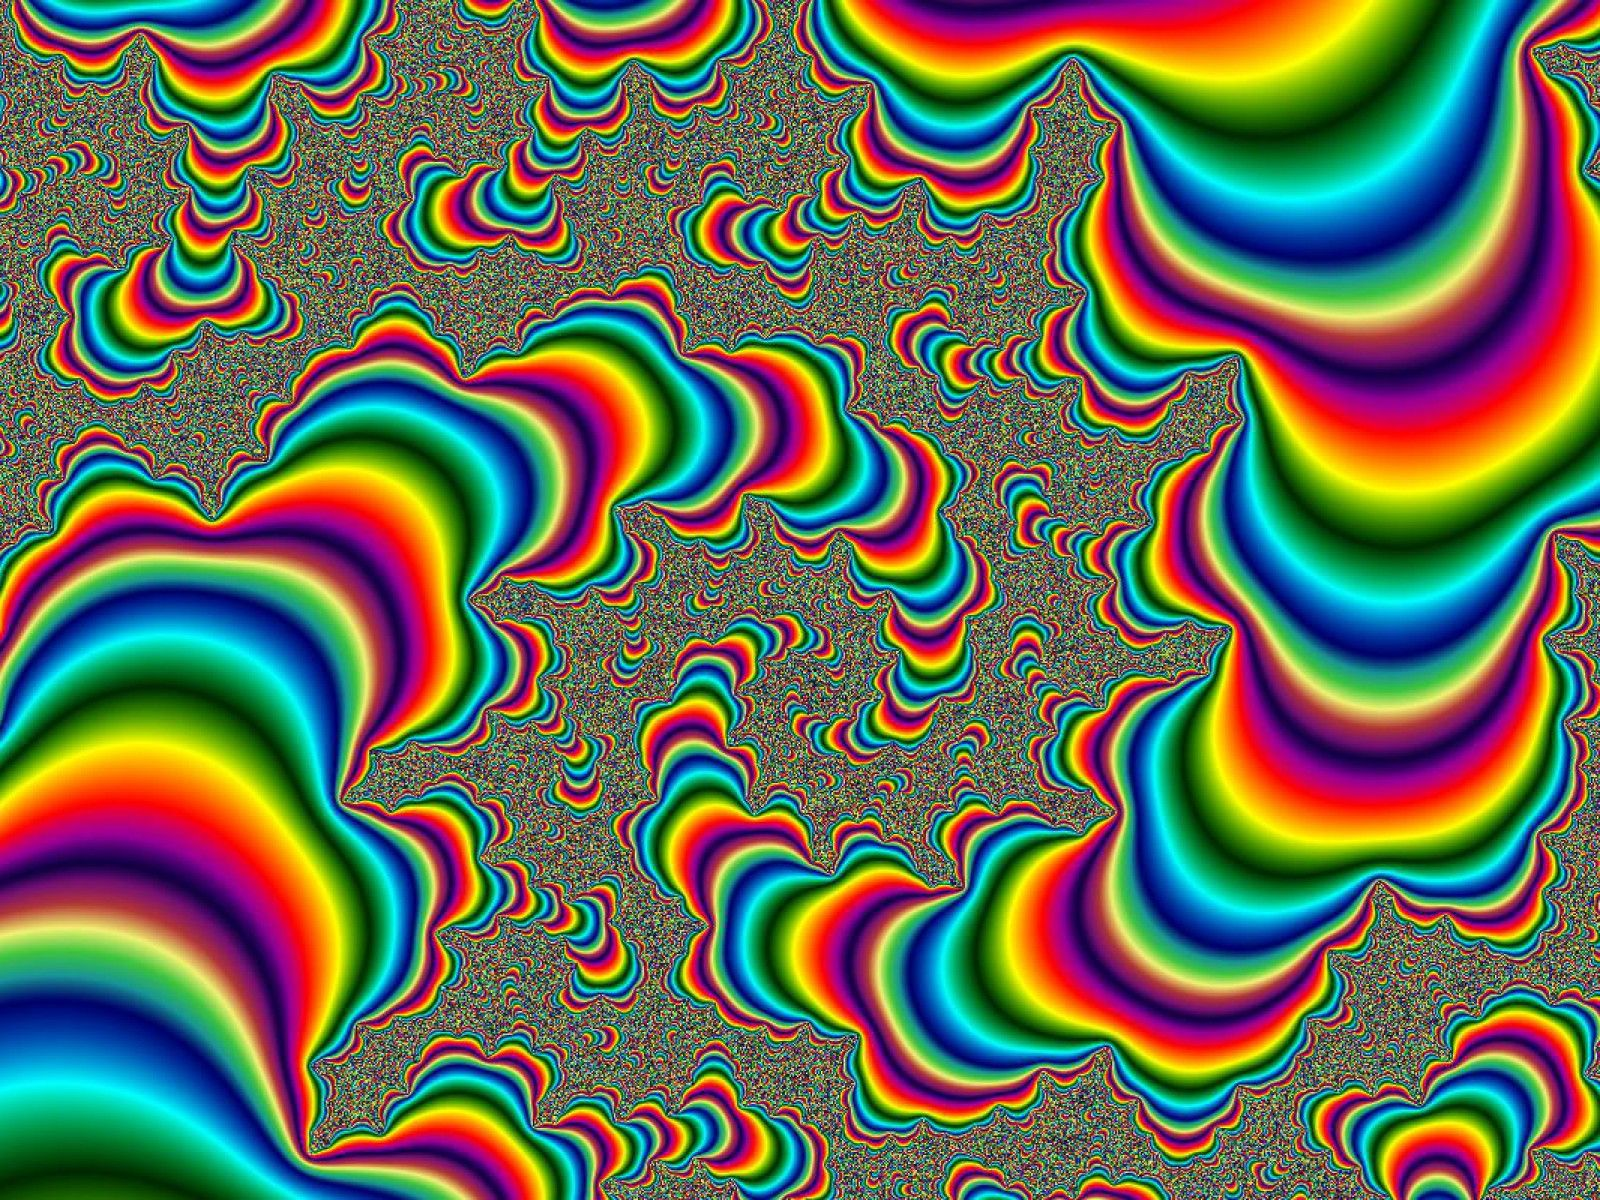 Falling Weed Live Wallpaper For Iphone Download Trippy Animated Wallpapers Gallery